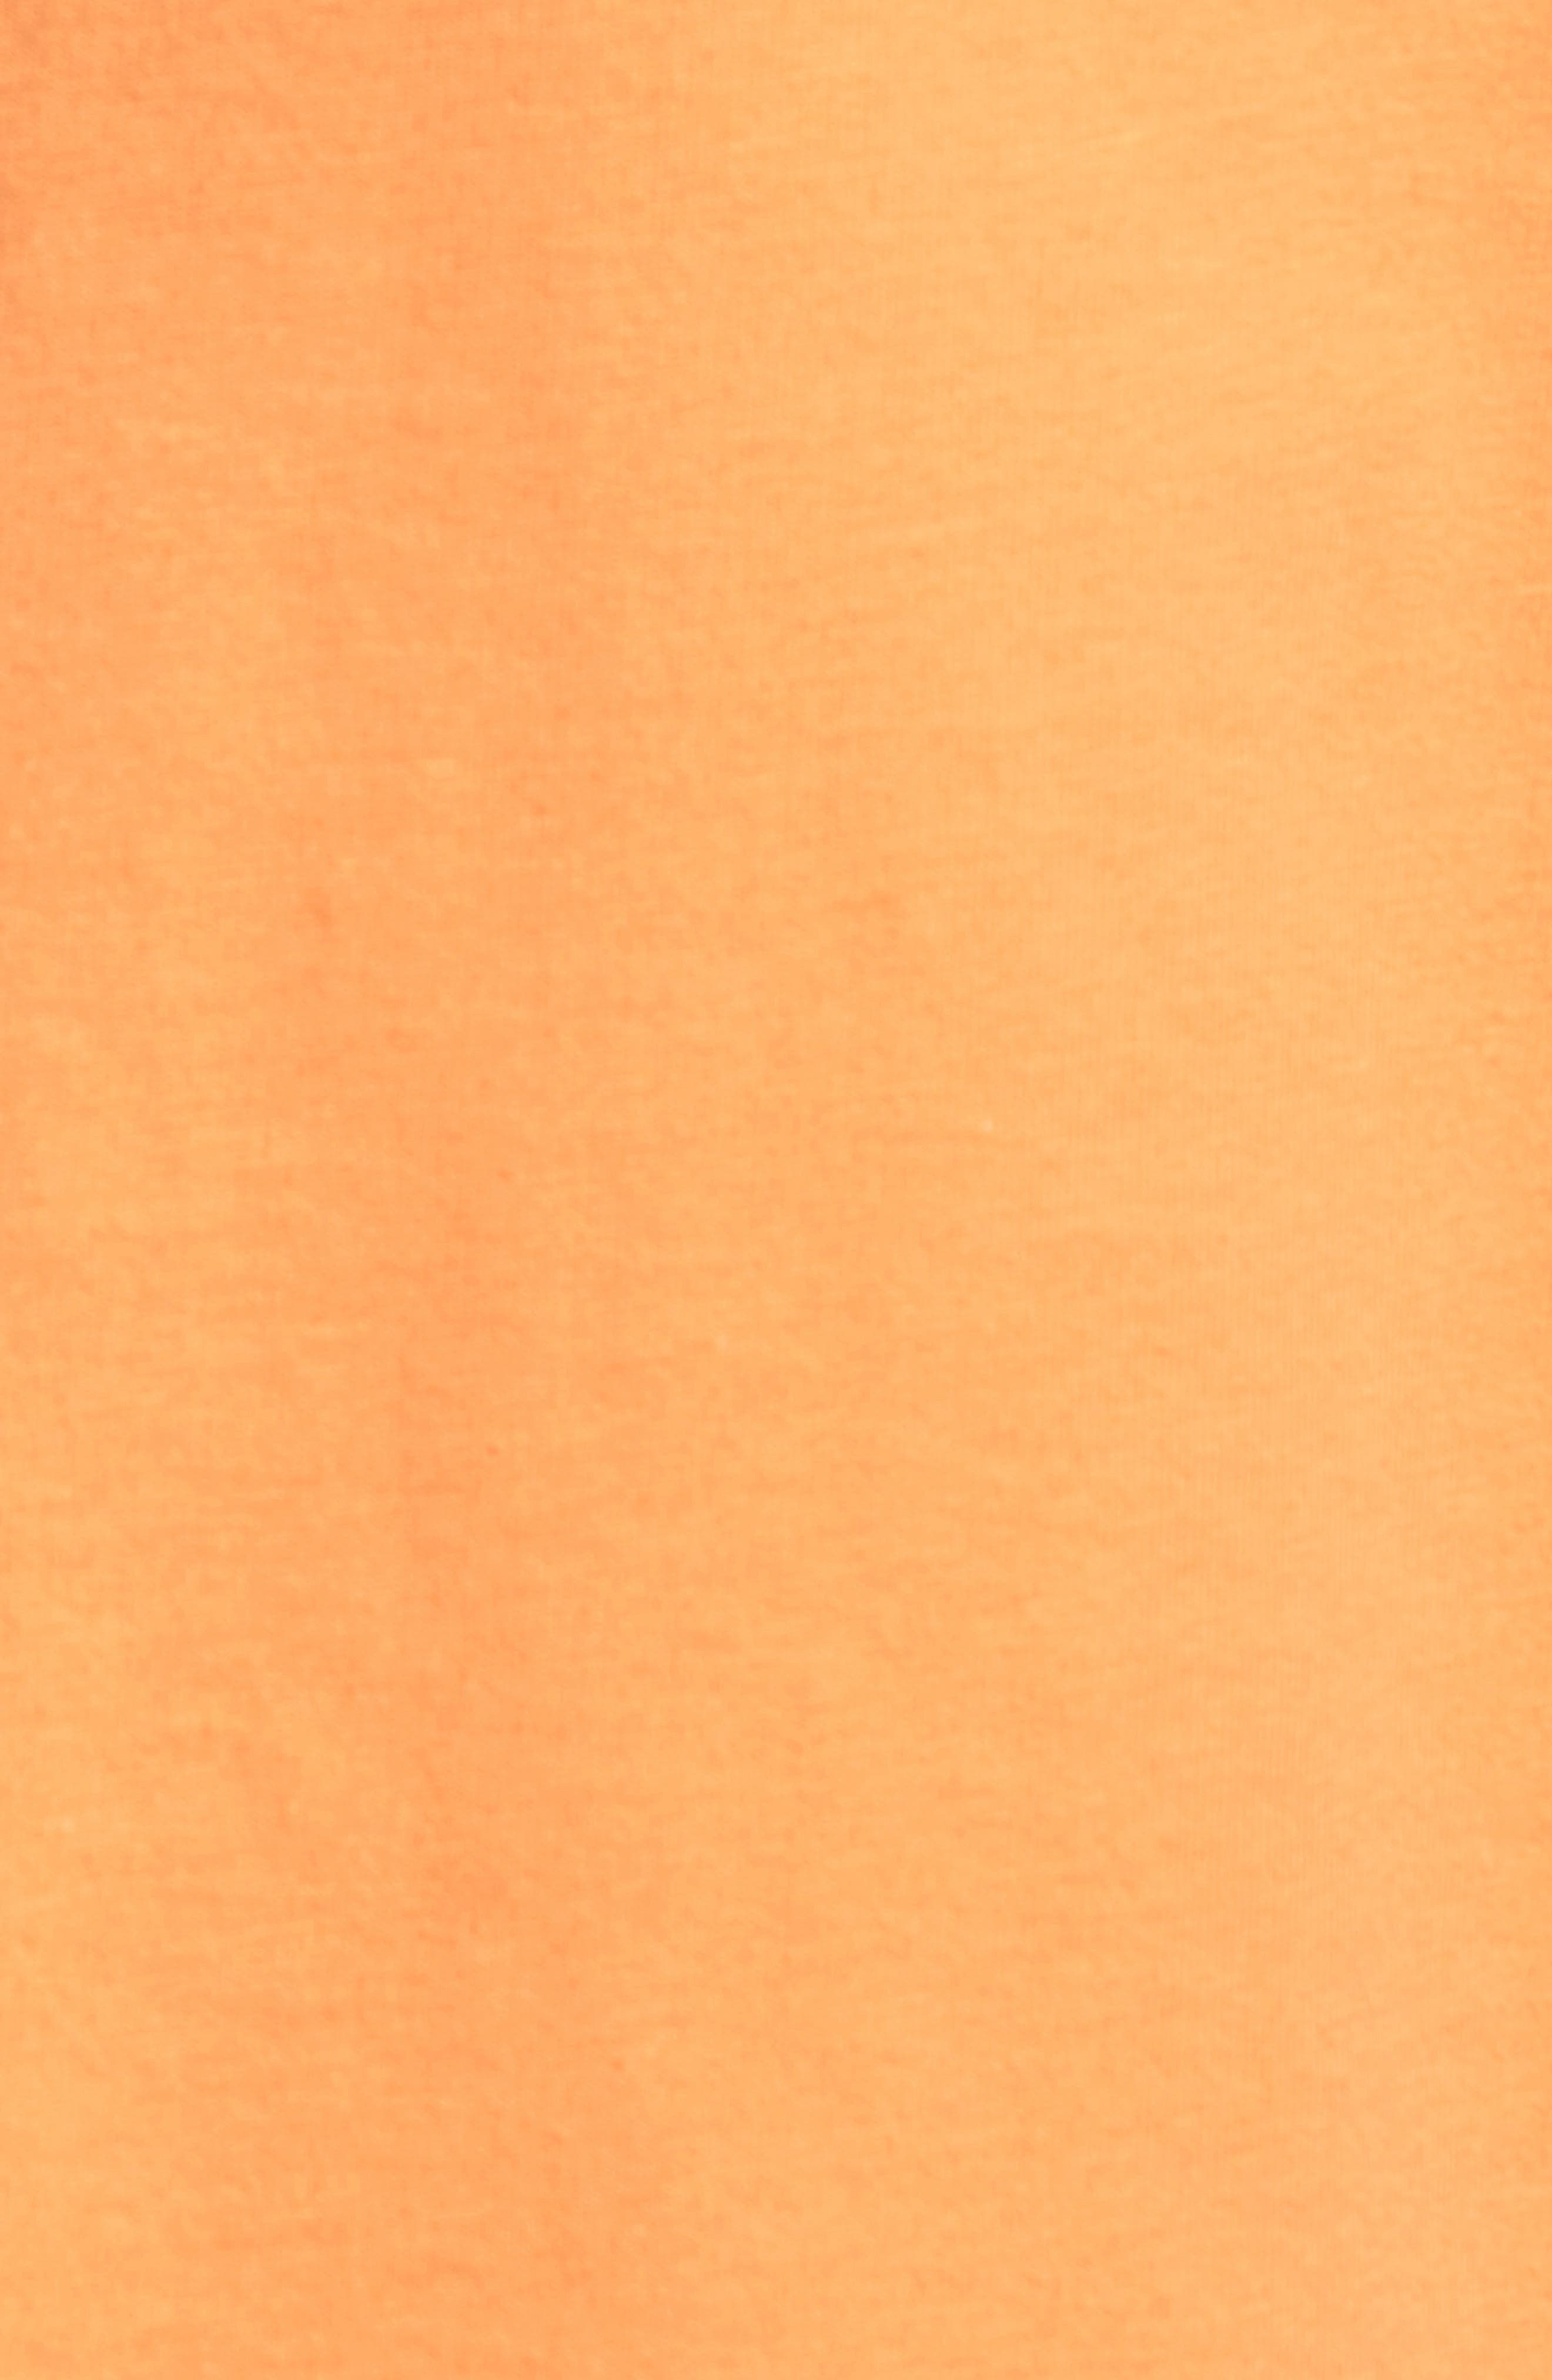 Ryes to the Occasion T-Shirt,                             Alternate thumbnail 5, color,                             Bright Apricot